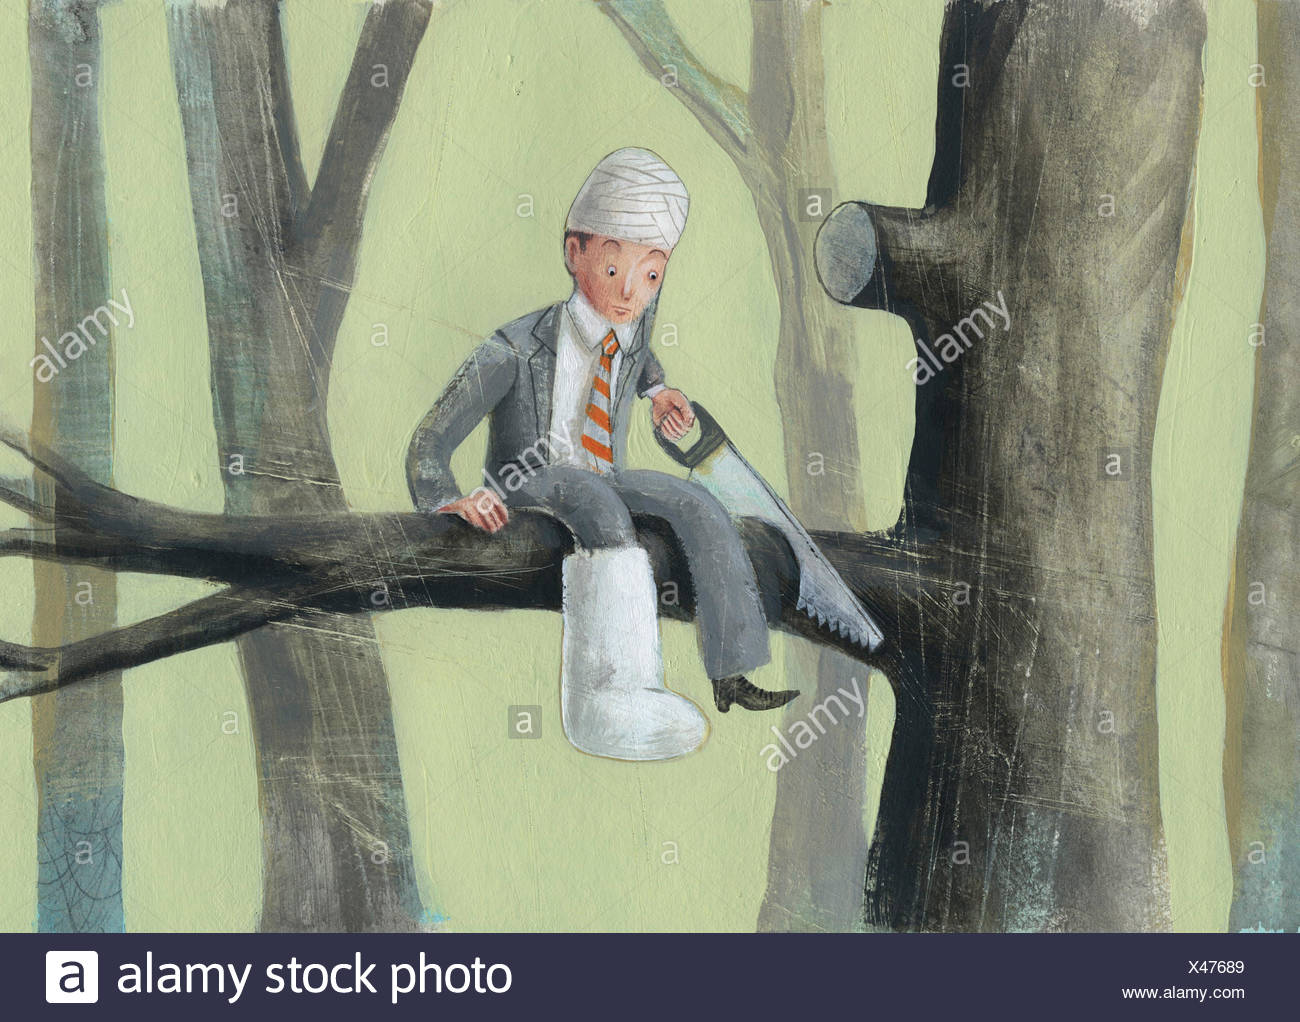 Foolish injured businessman sawing through the branch he is sitting on - Stock Image